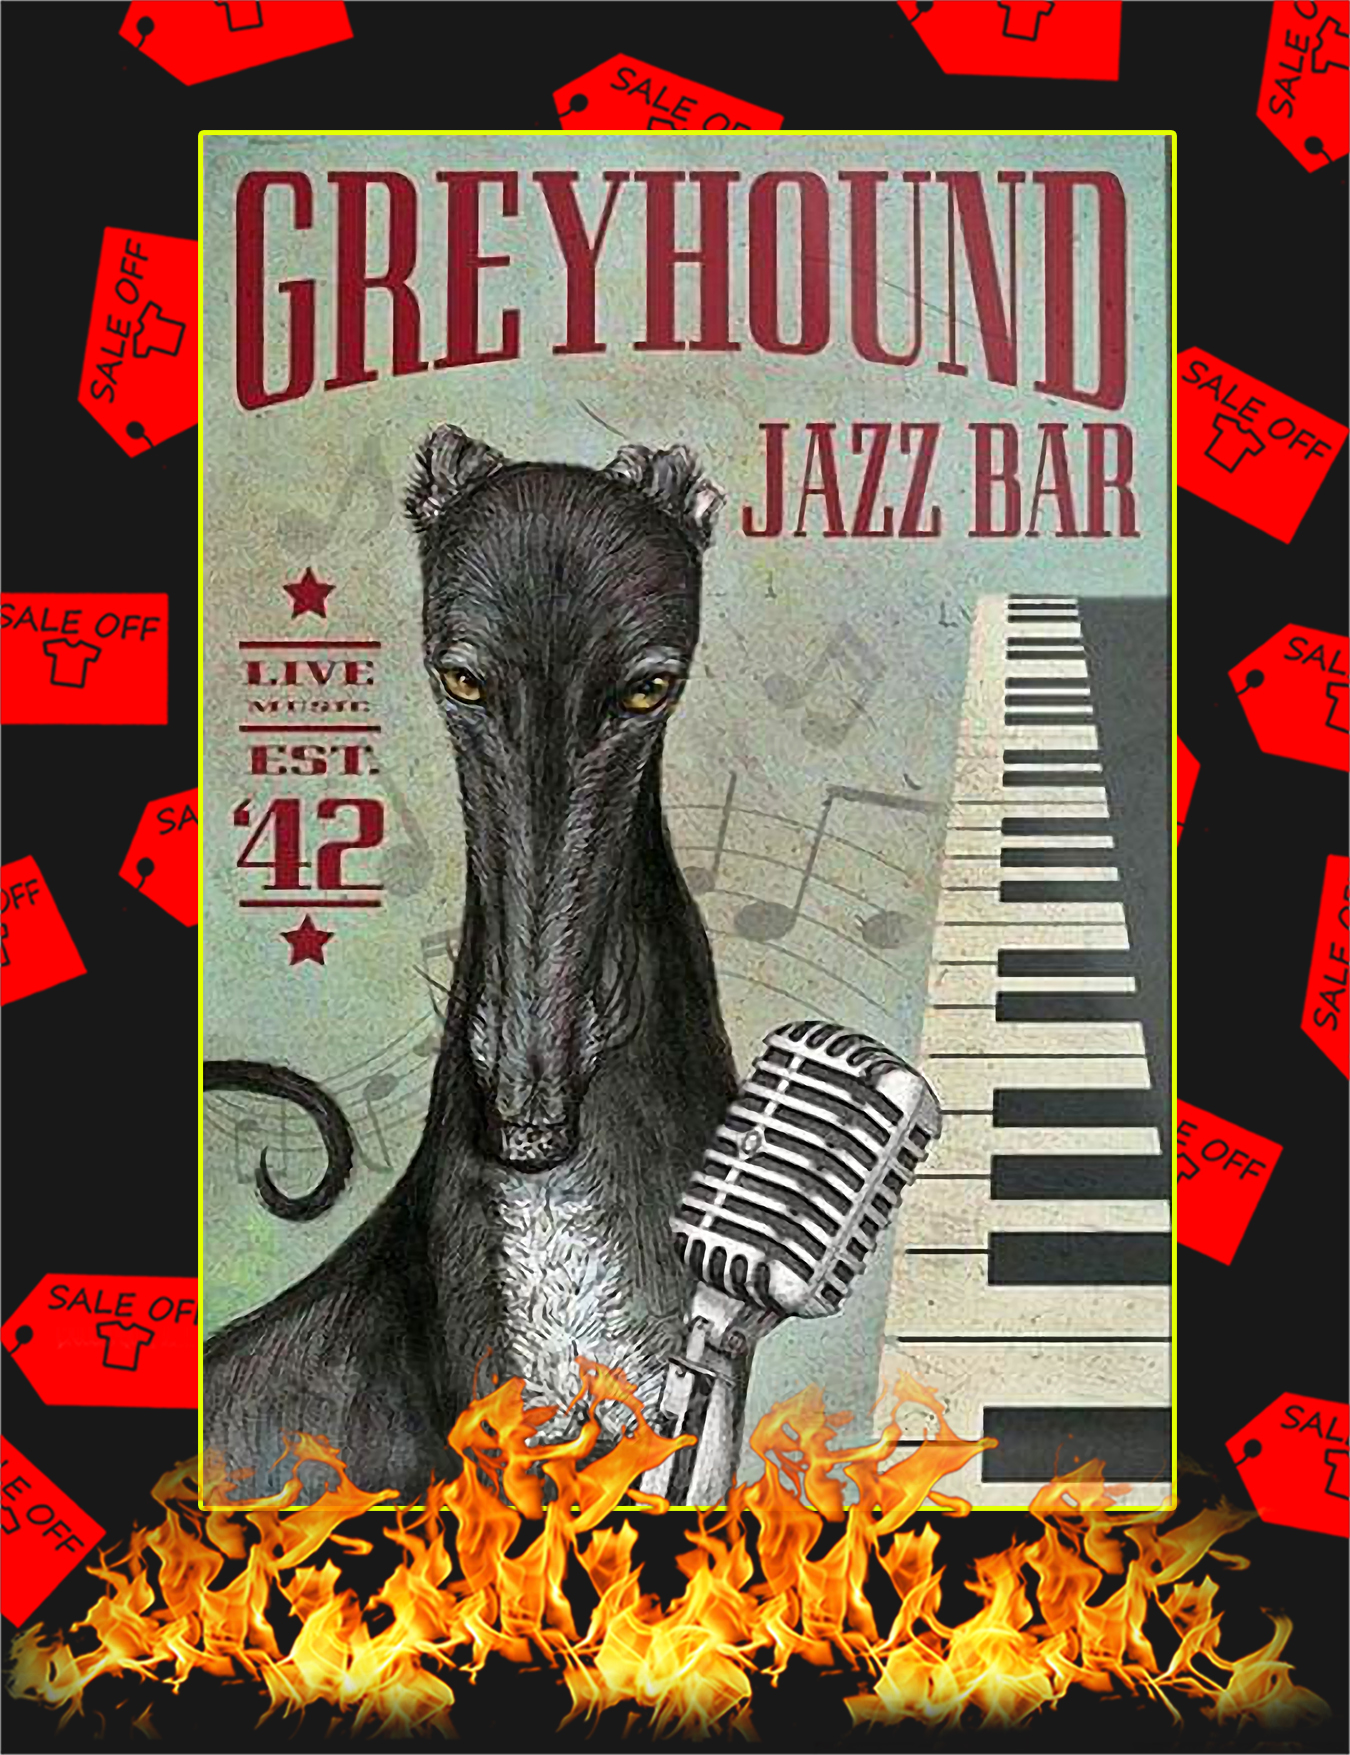 Greyhound Jazz Bar Poster - A4